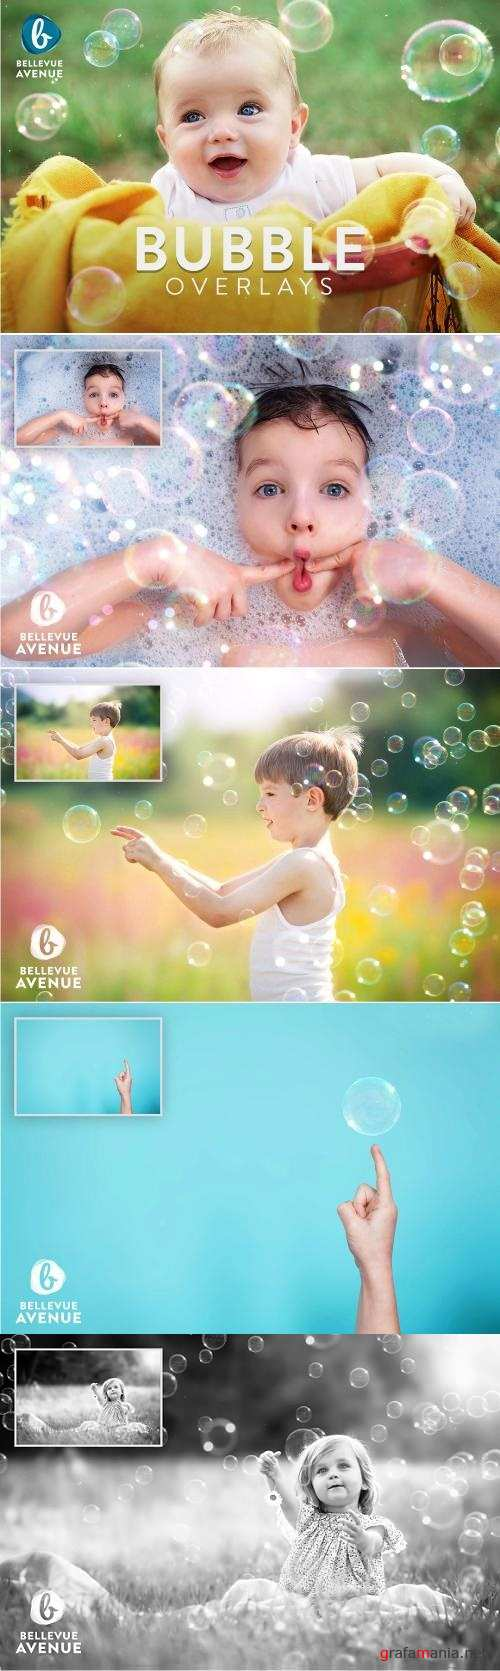 Bubble Overlays (Real) - 2294988